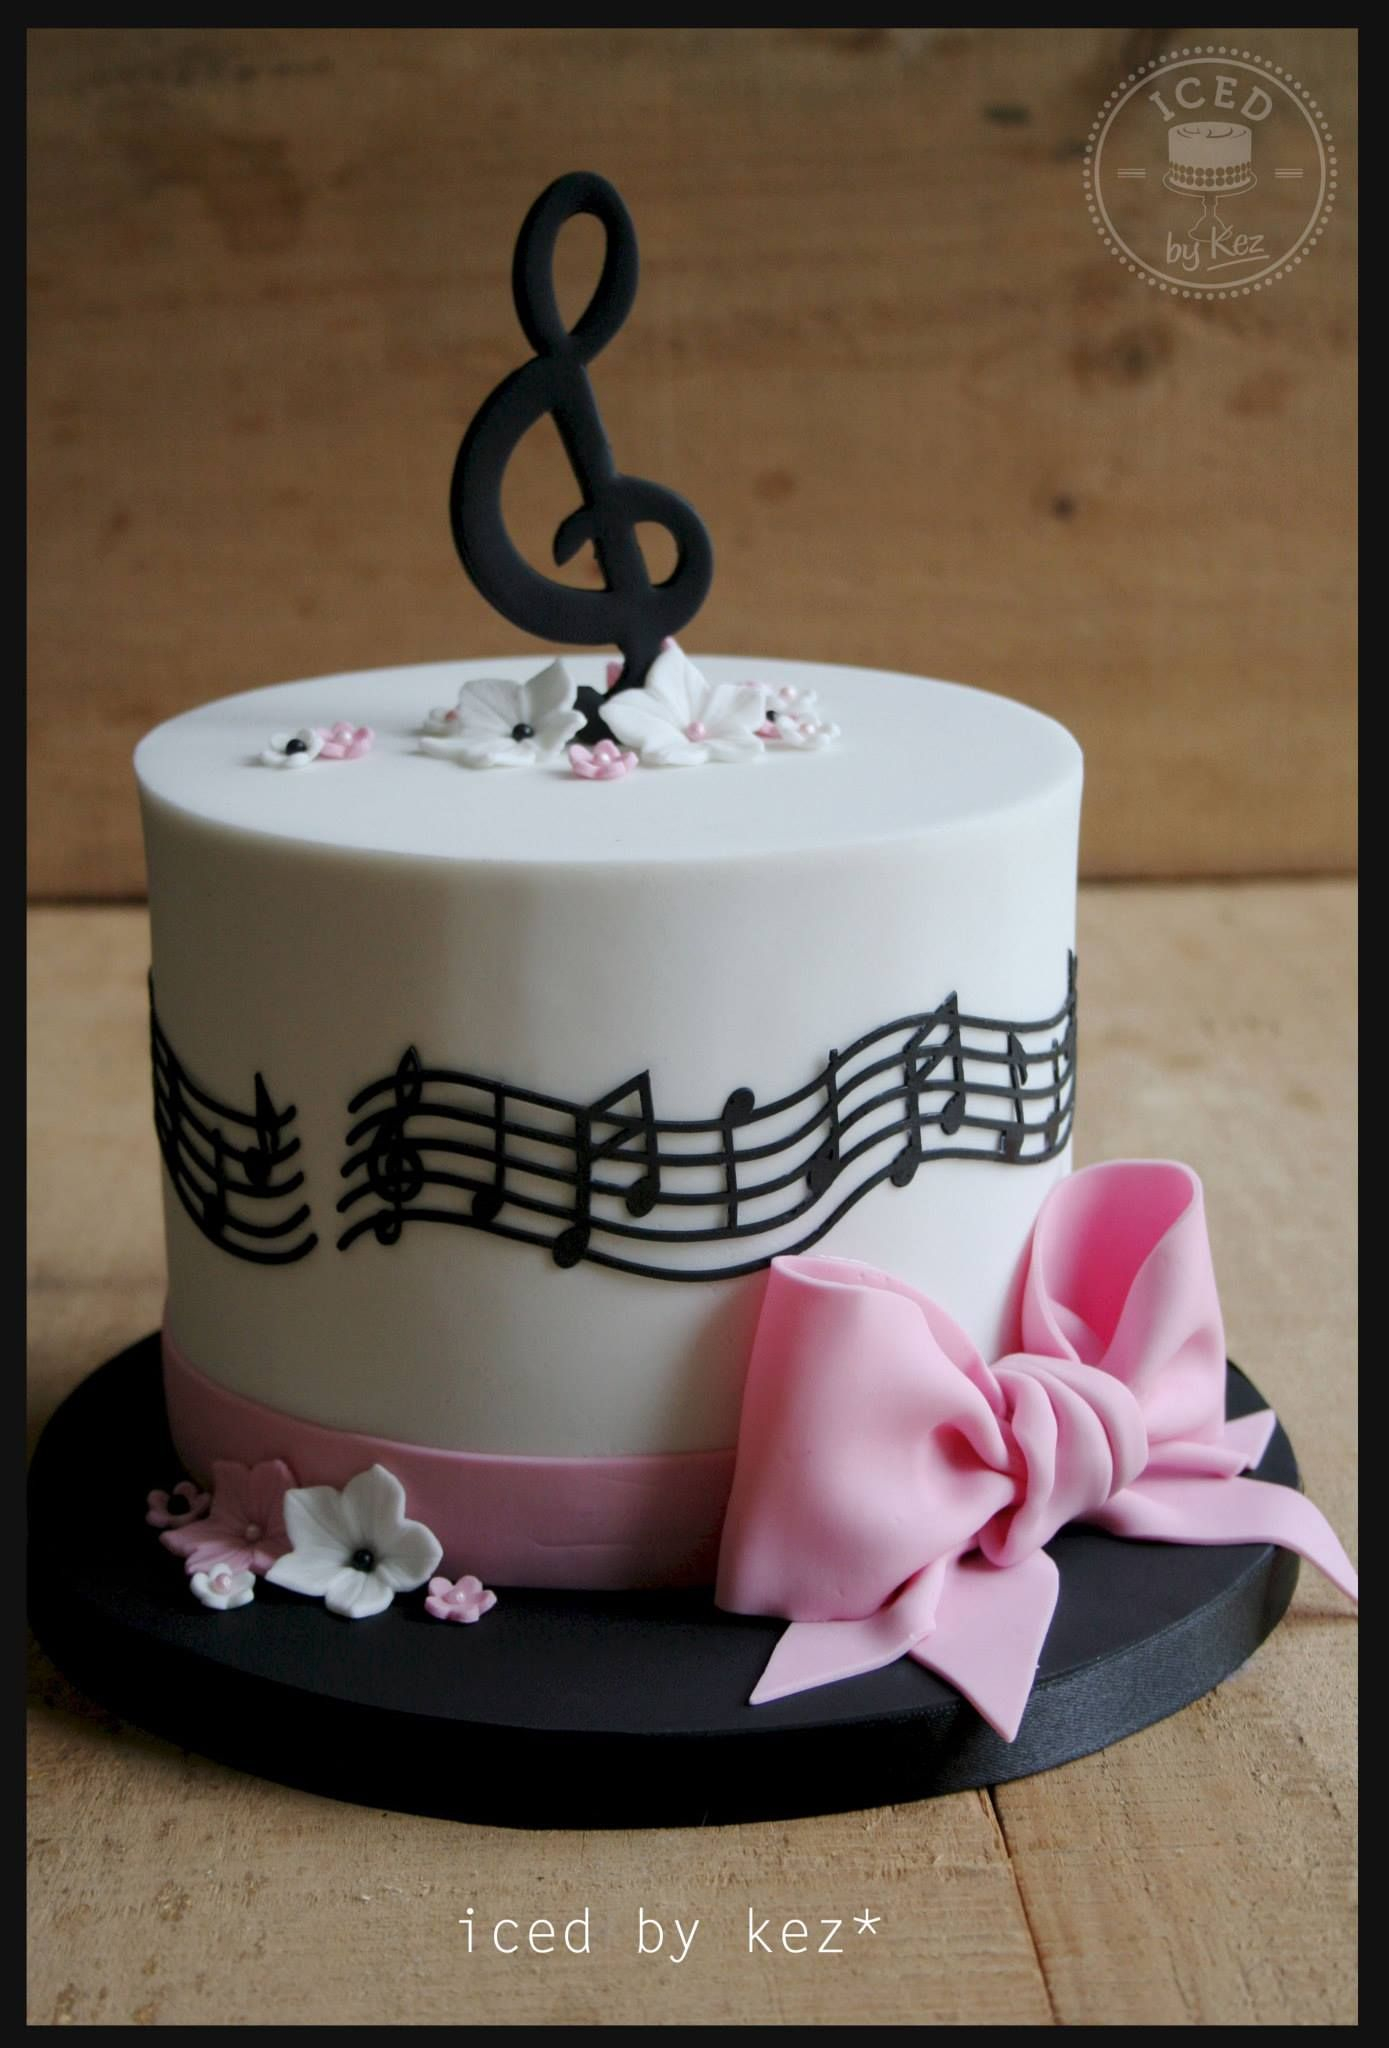 Music Birthday Cakes Iced Kez Cakes Pinterest Cake Music Cakes And Music Themed